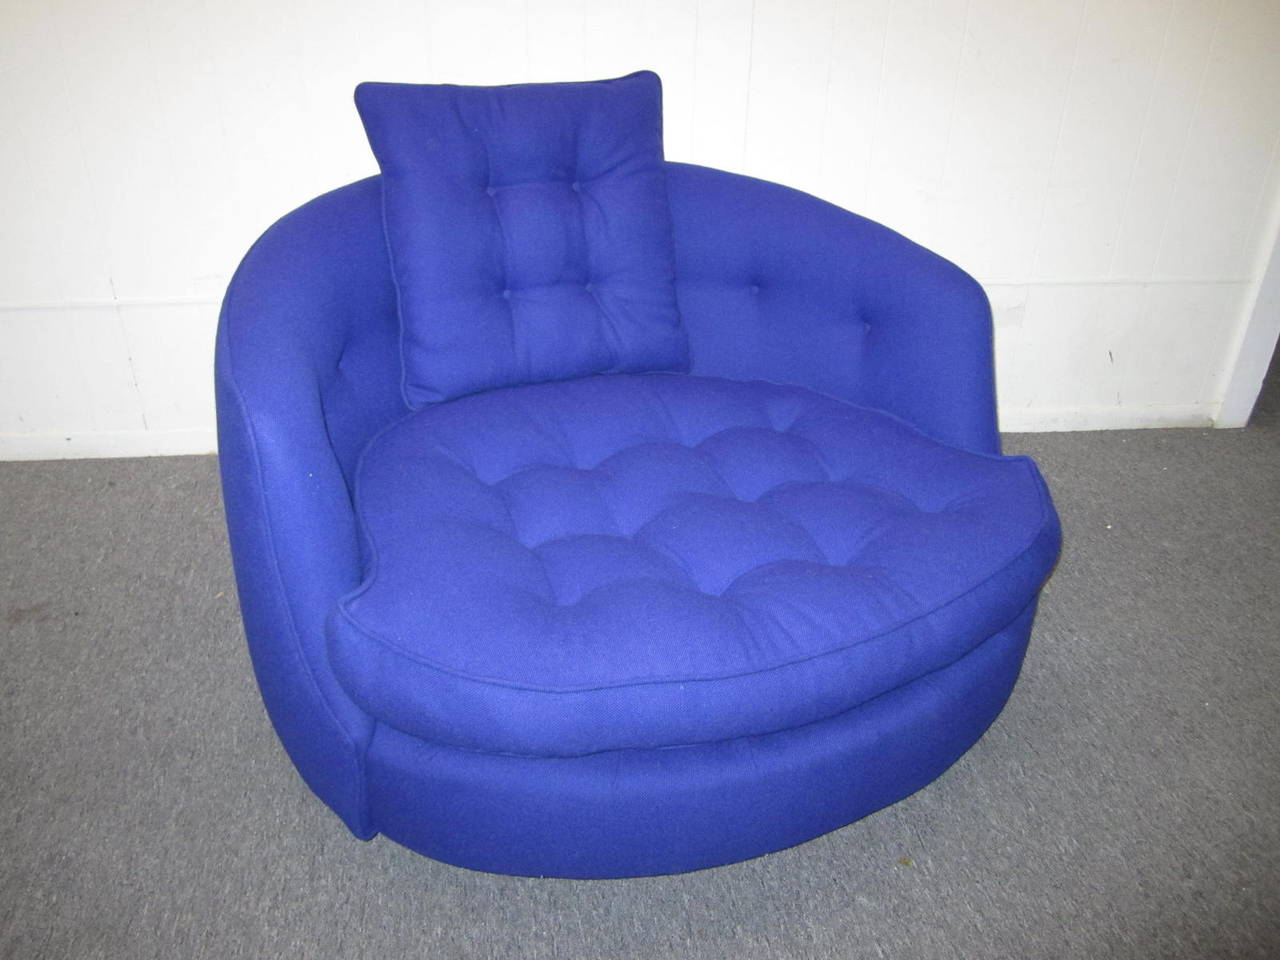 Fabulous Oversized Round Circular Milo Baughman Swivel Lounge Chair For Sale At 1stdibs